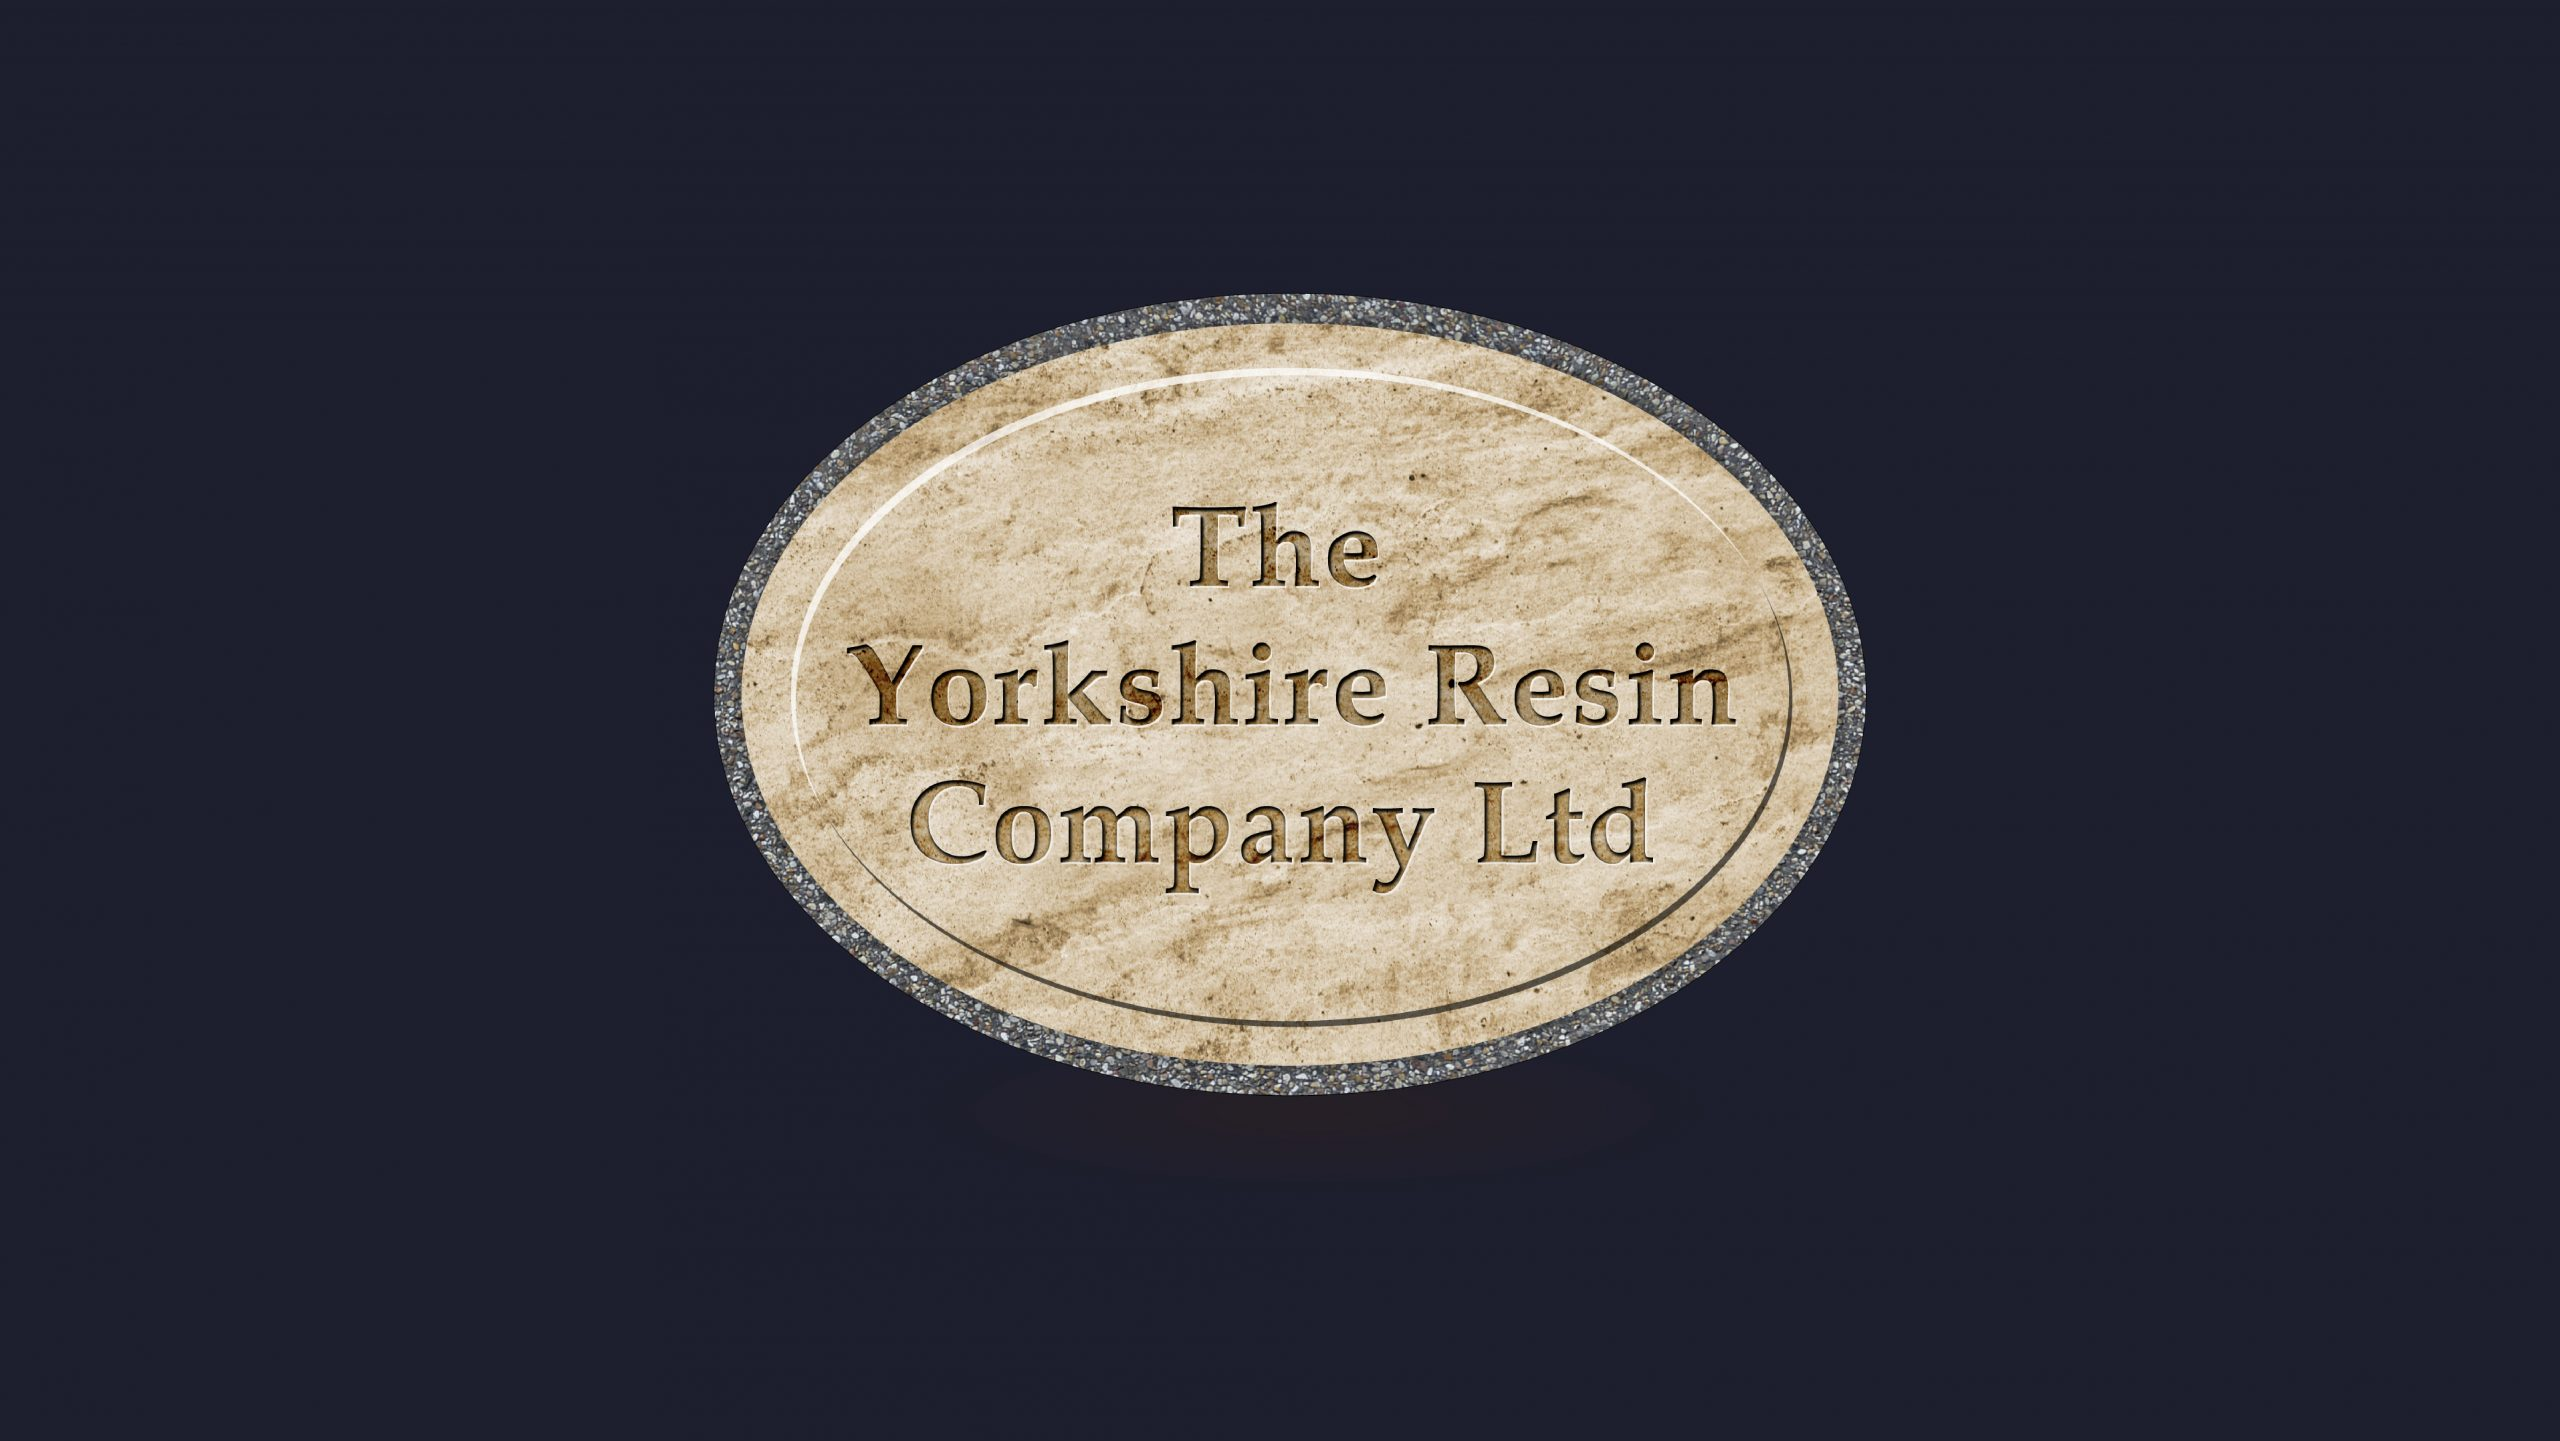 The Yorkshire Resin Company